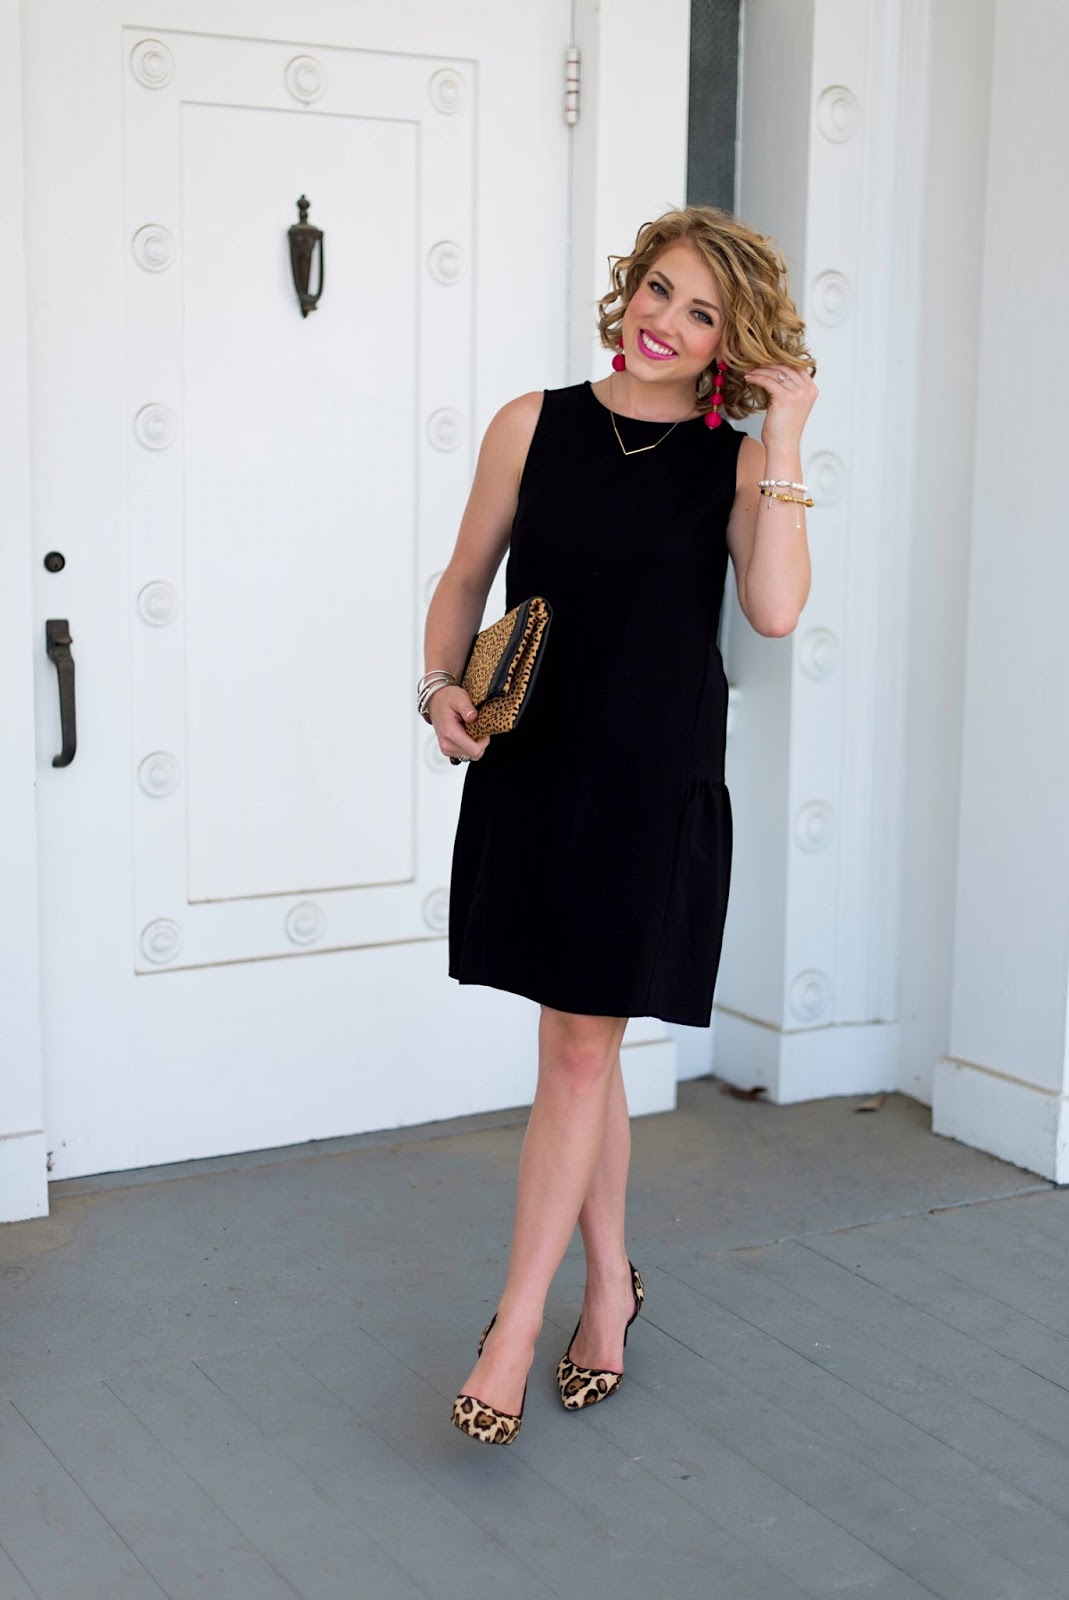 How to style a LBD (little black dress) - Click through to see the full look on Something Delightful Blog!